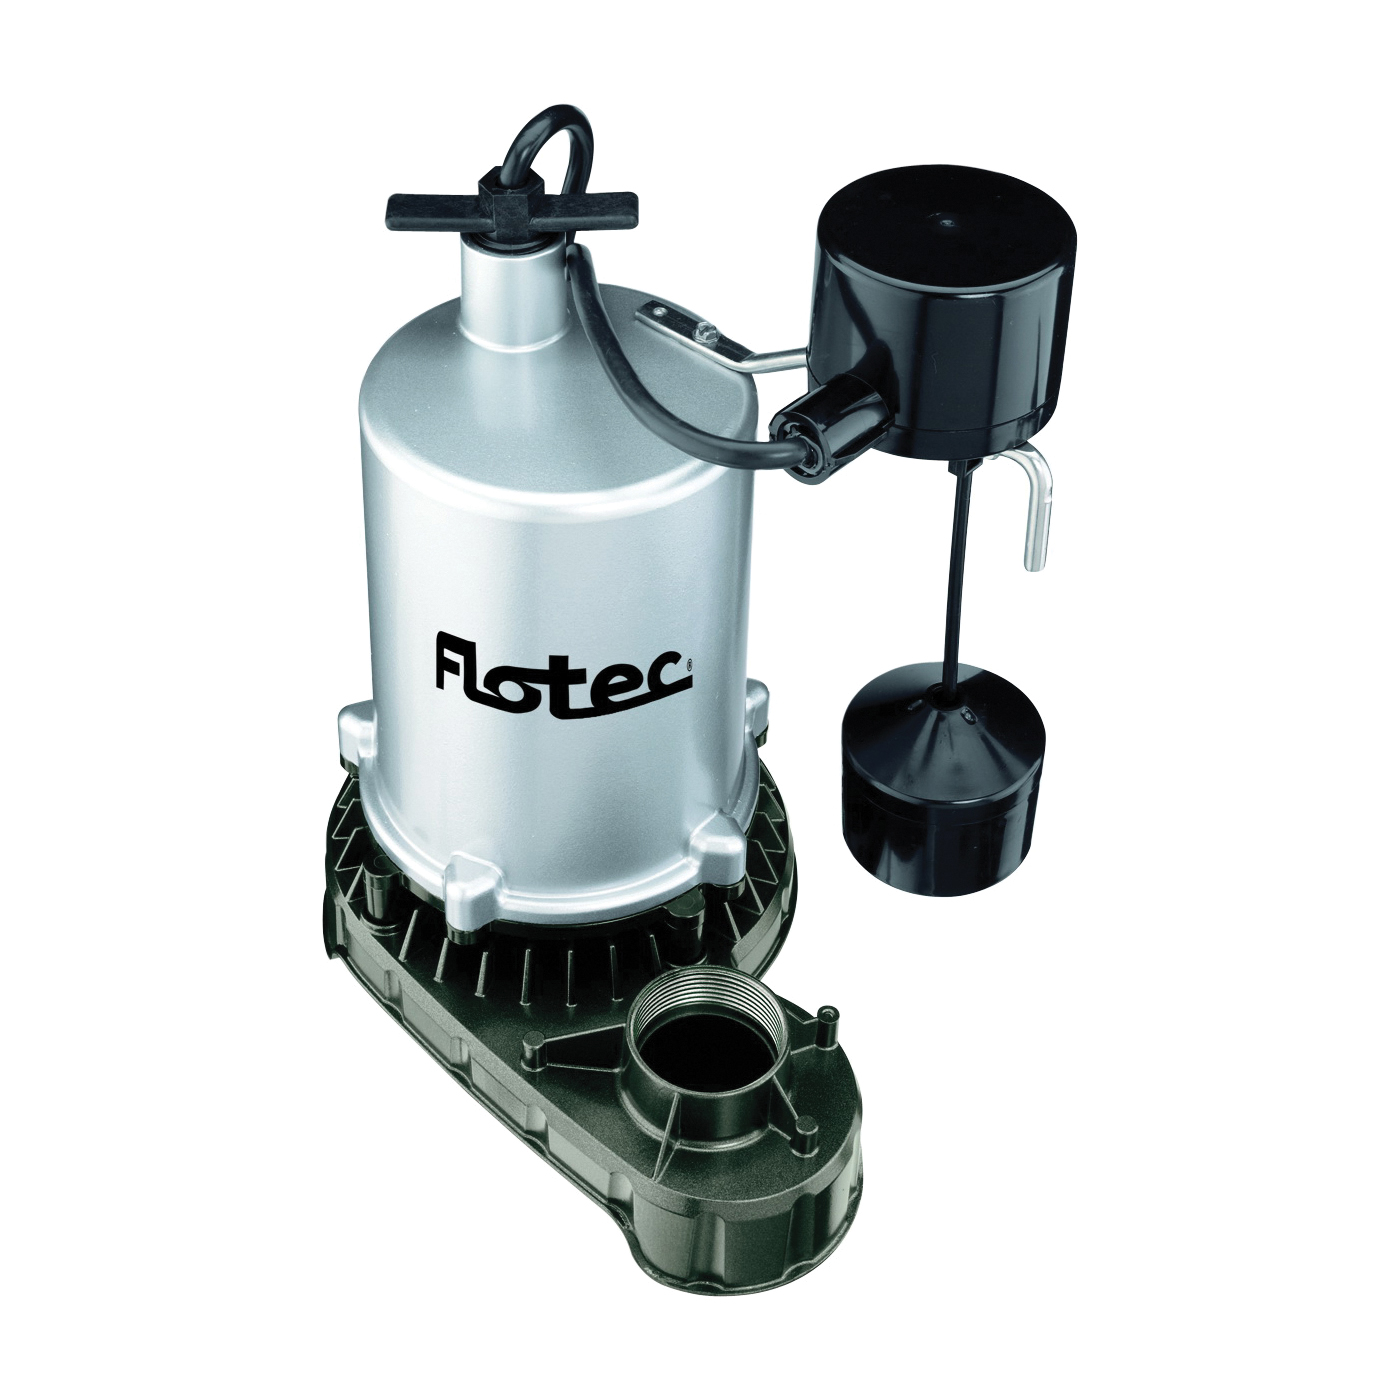 Picture of Flotec FPZT7450 Sump Pump, 7.5 A, 115 V, 0.75 hp, 1-1/2 in Outlet, 26 ft Max Head, 420 gph, Zinc